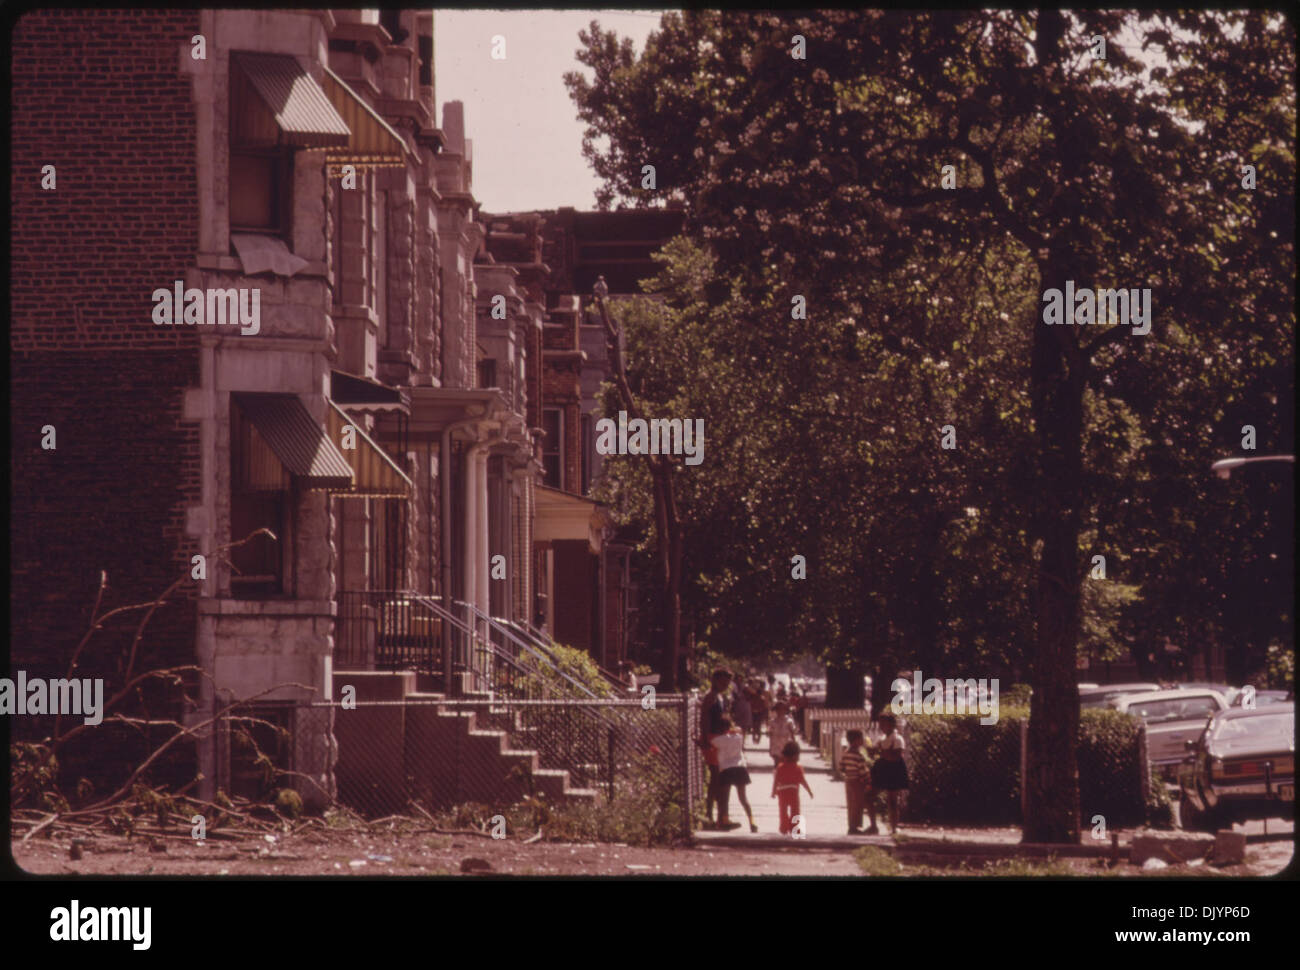 BLACK NEIGHBORHOOD ON CHICAGO'S WEST SIDE. THE WEST SIDE WAS HARD HIT BY RIOTS AND FIRES IN THE MID AND LATE - Stock Image